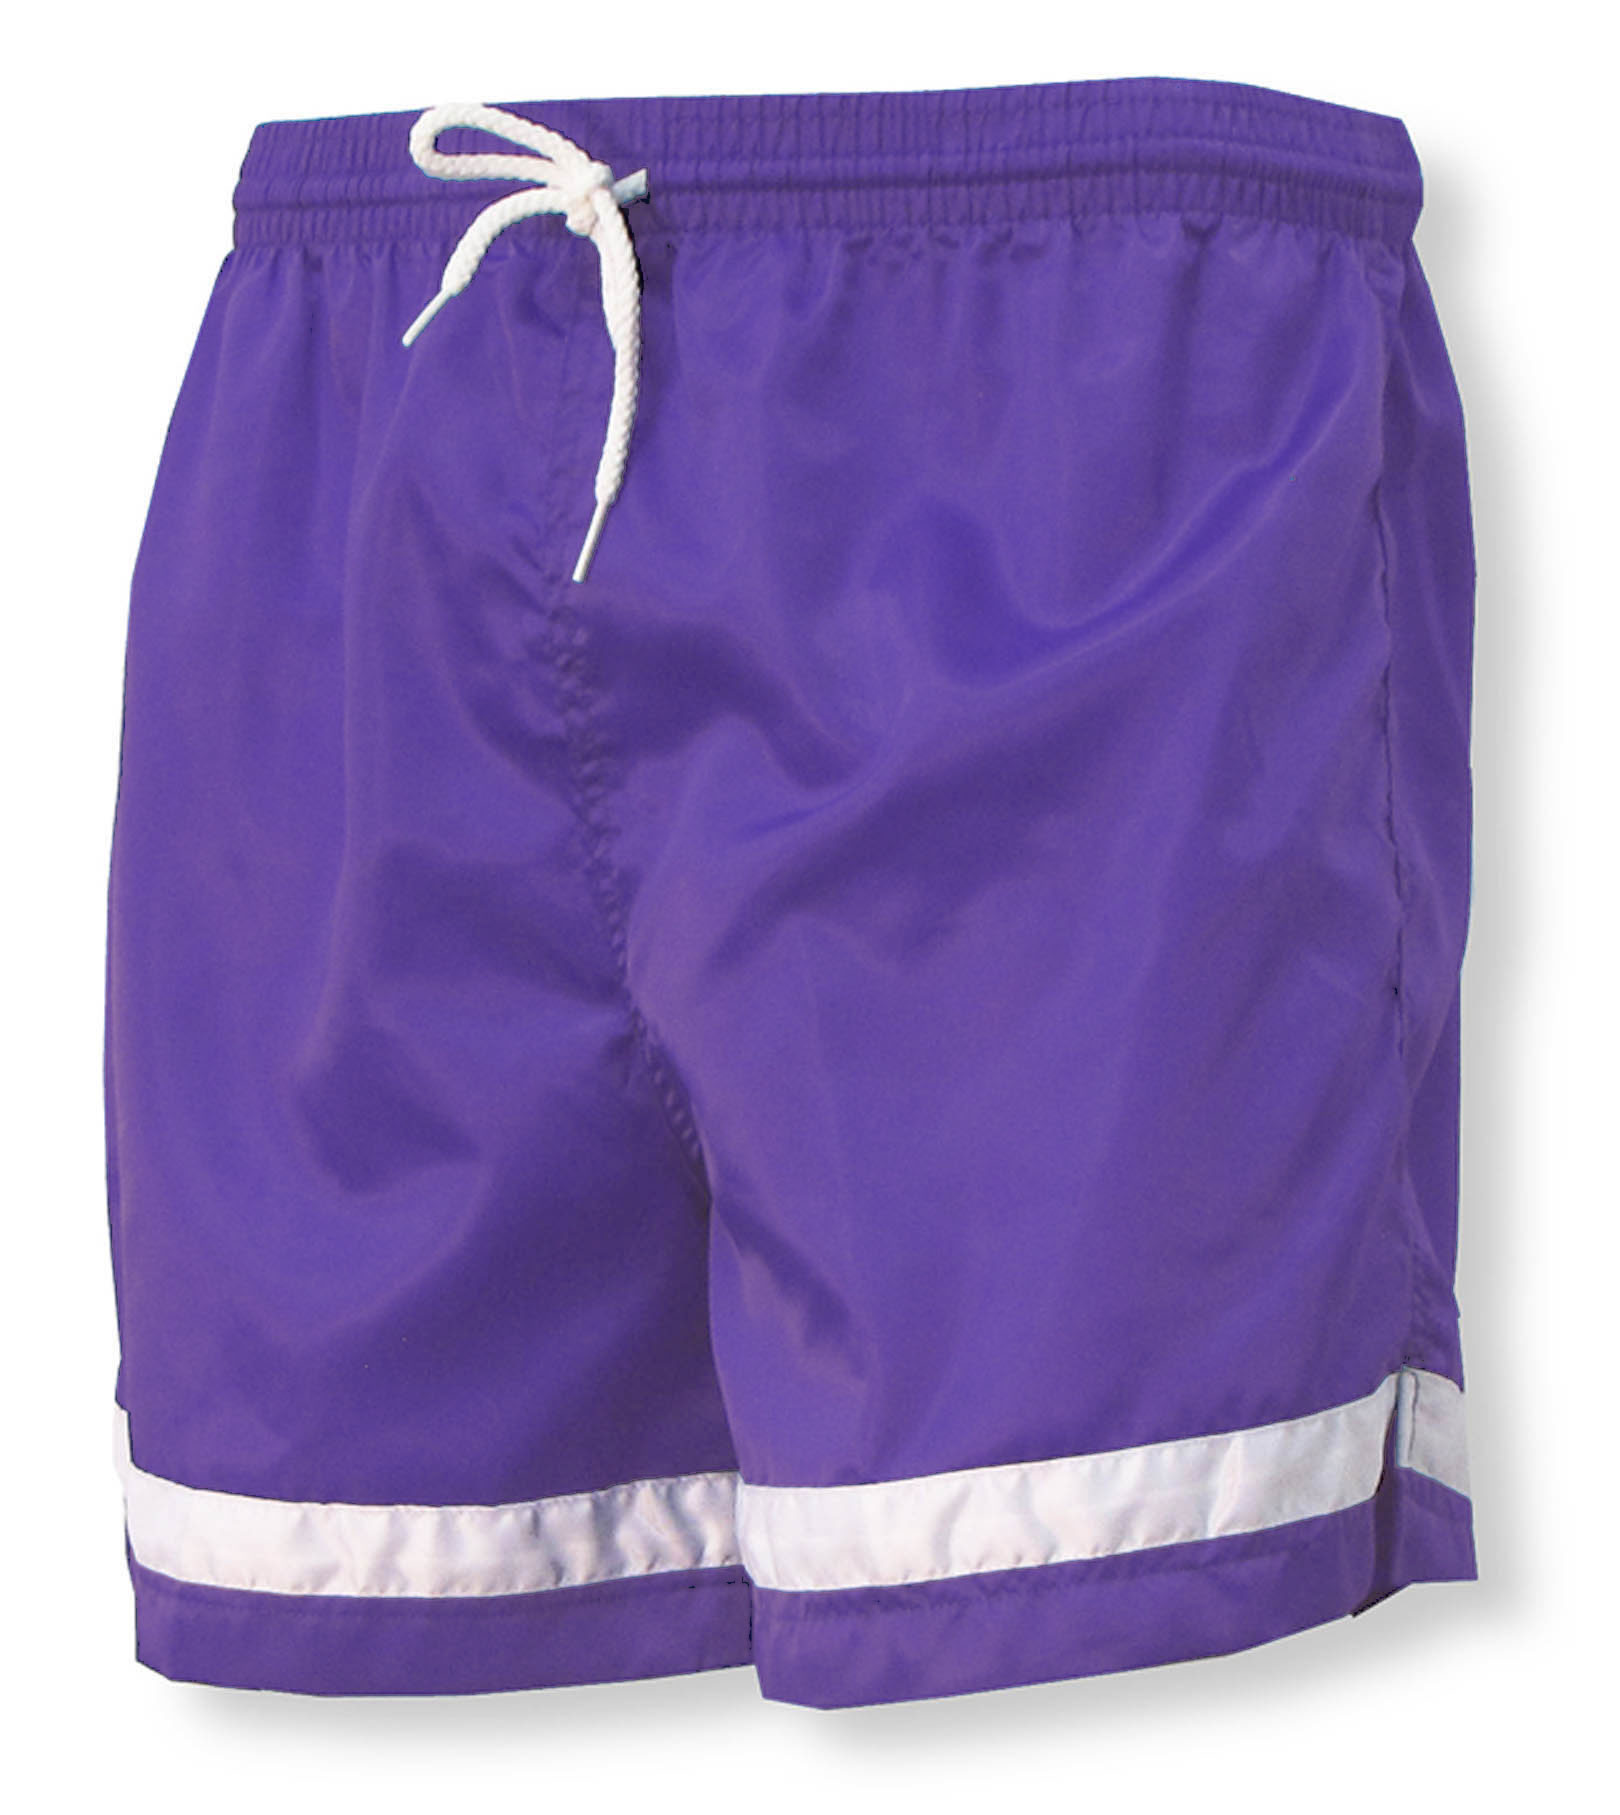 Code Four Athletics nylon soccer shorts in purple / white by Code Four Athletics